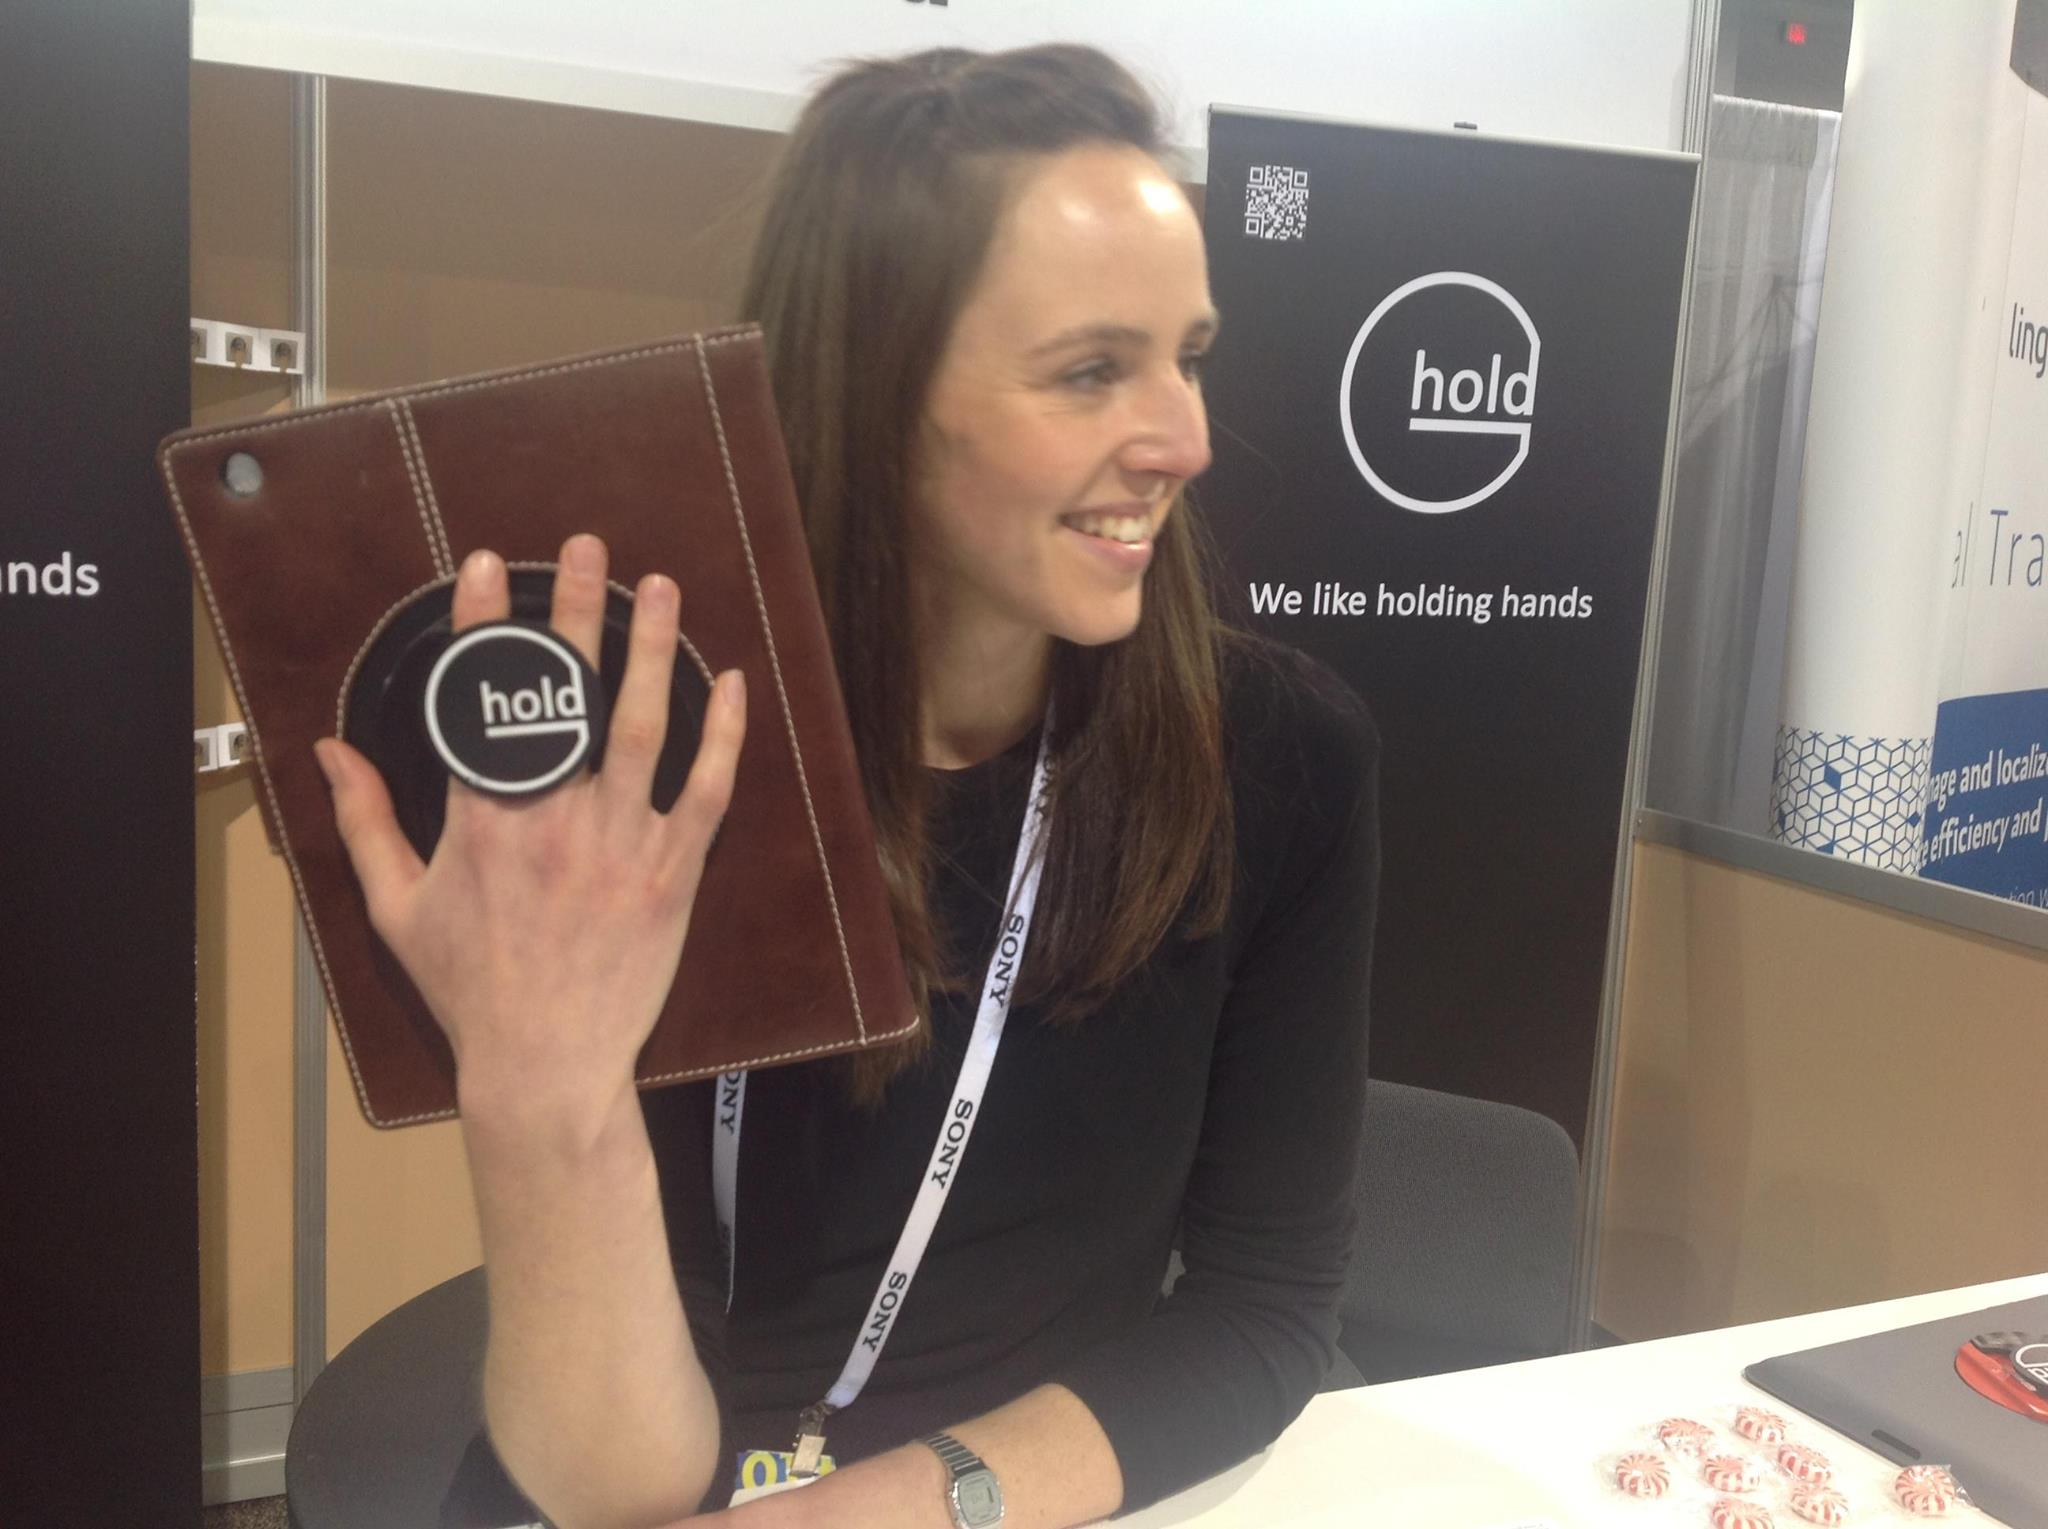 G-Hold at the Consumer Electronics Show in Las Vegas